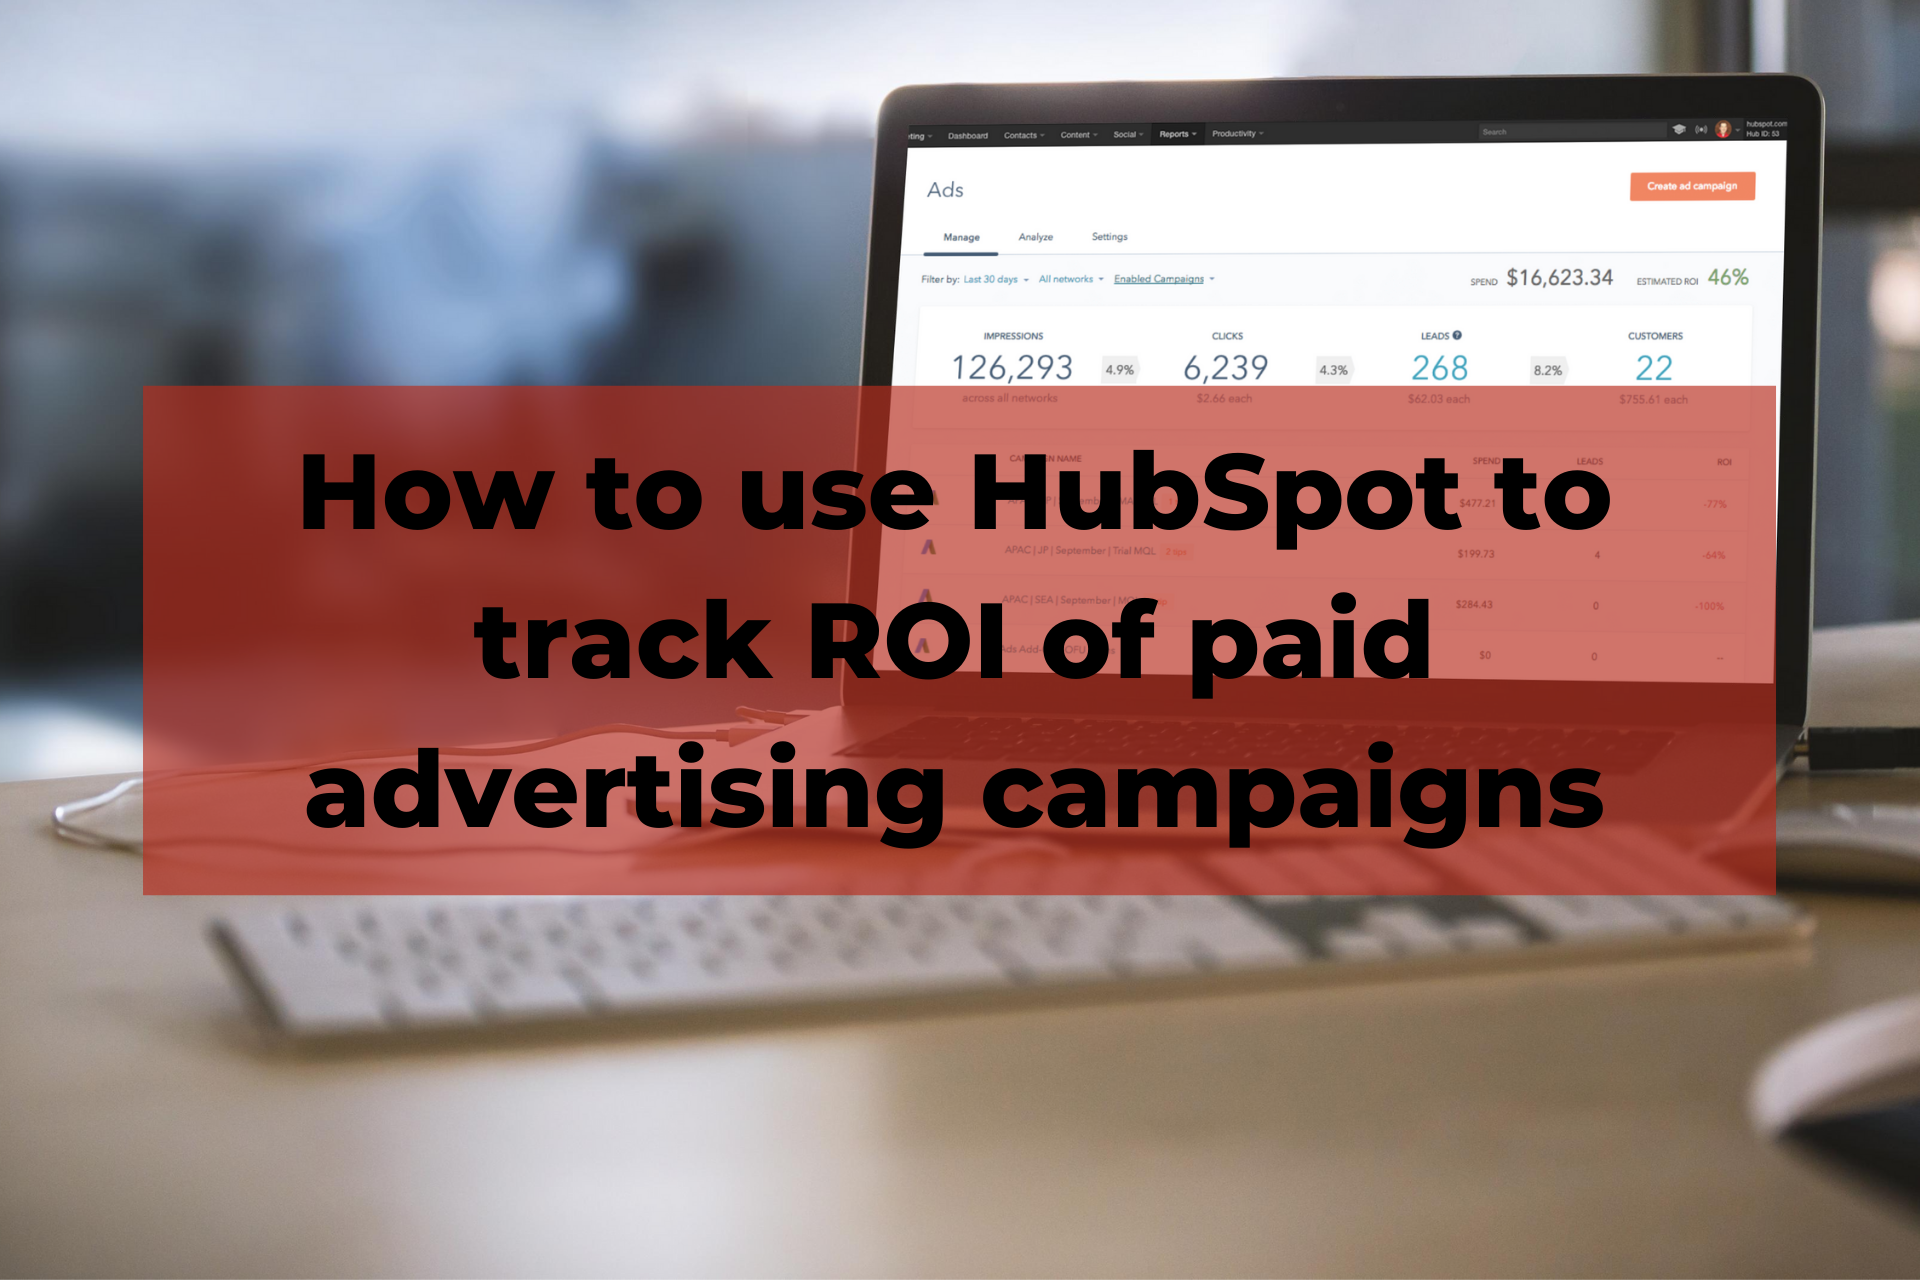 How to use HubSpot to track ROI of paid advertising campaigns